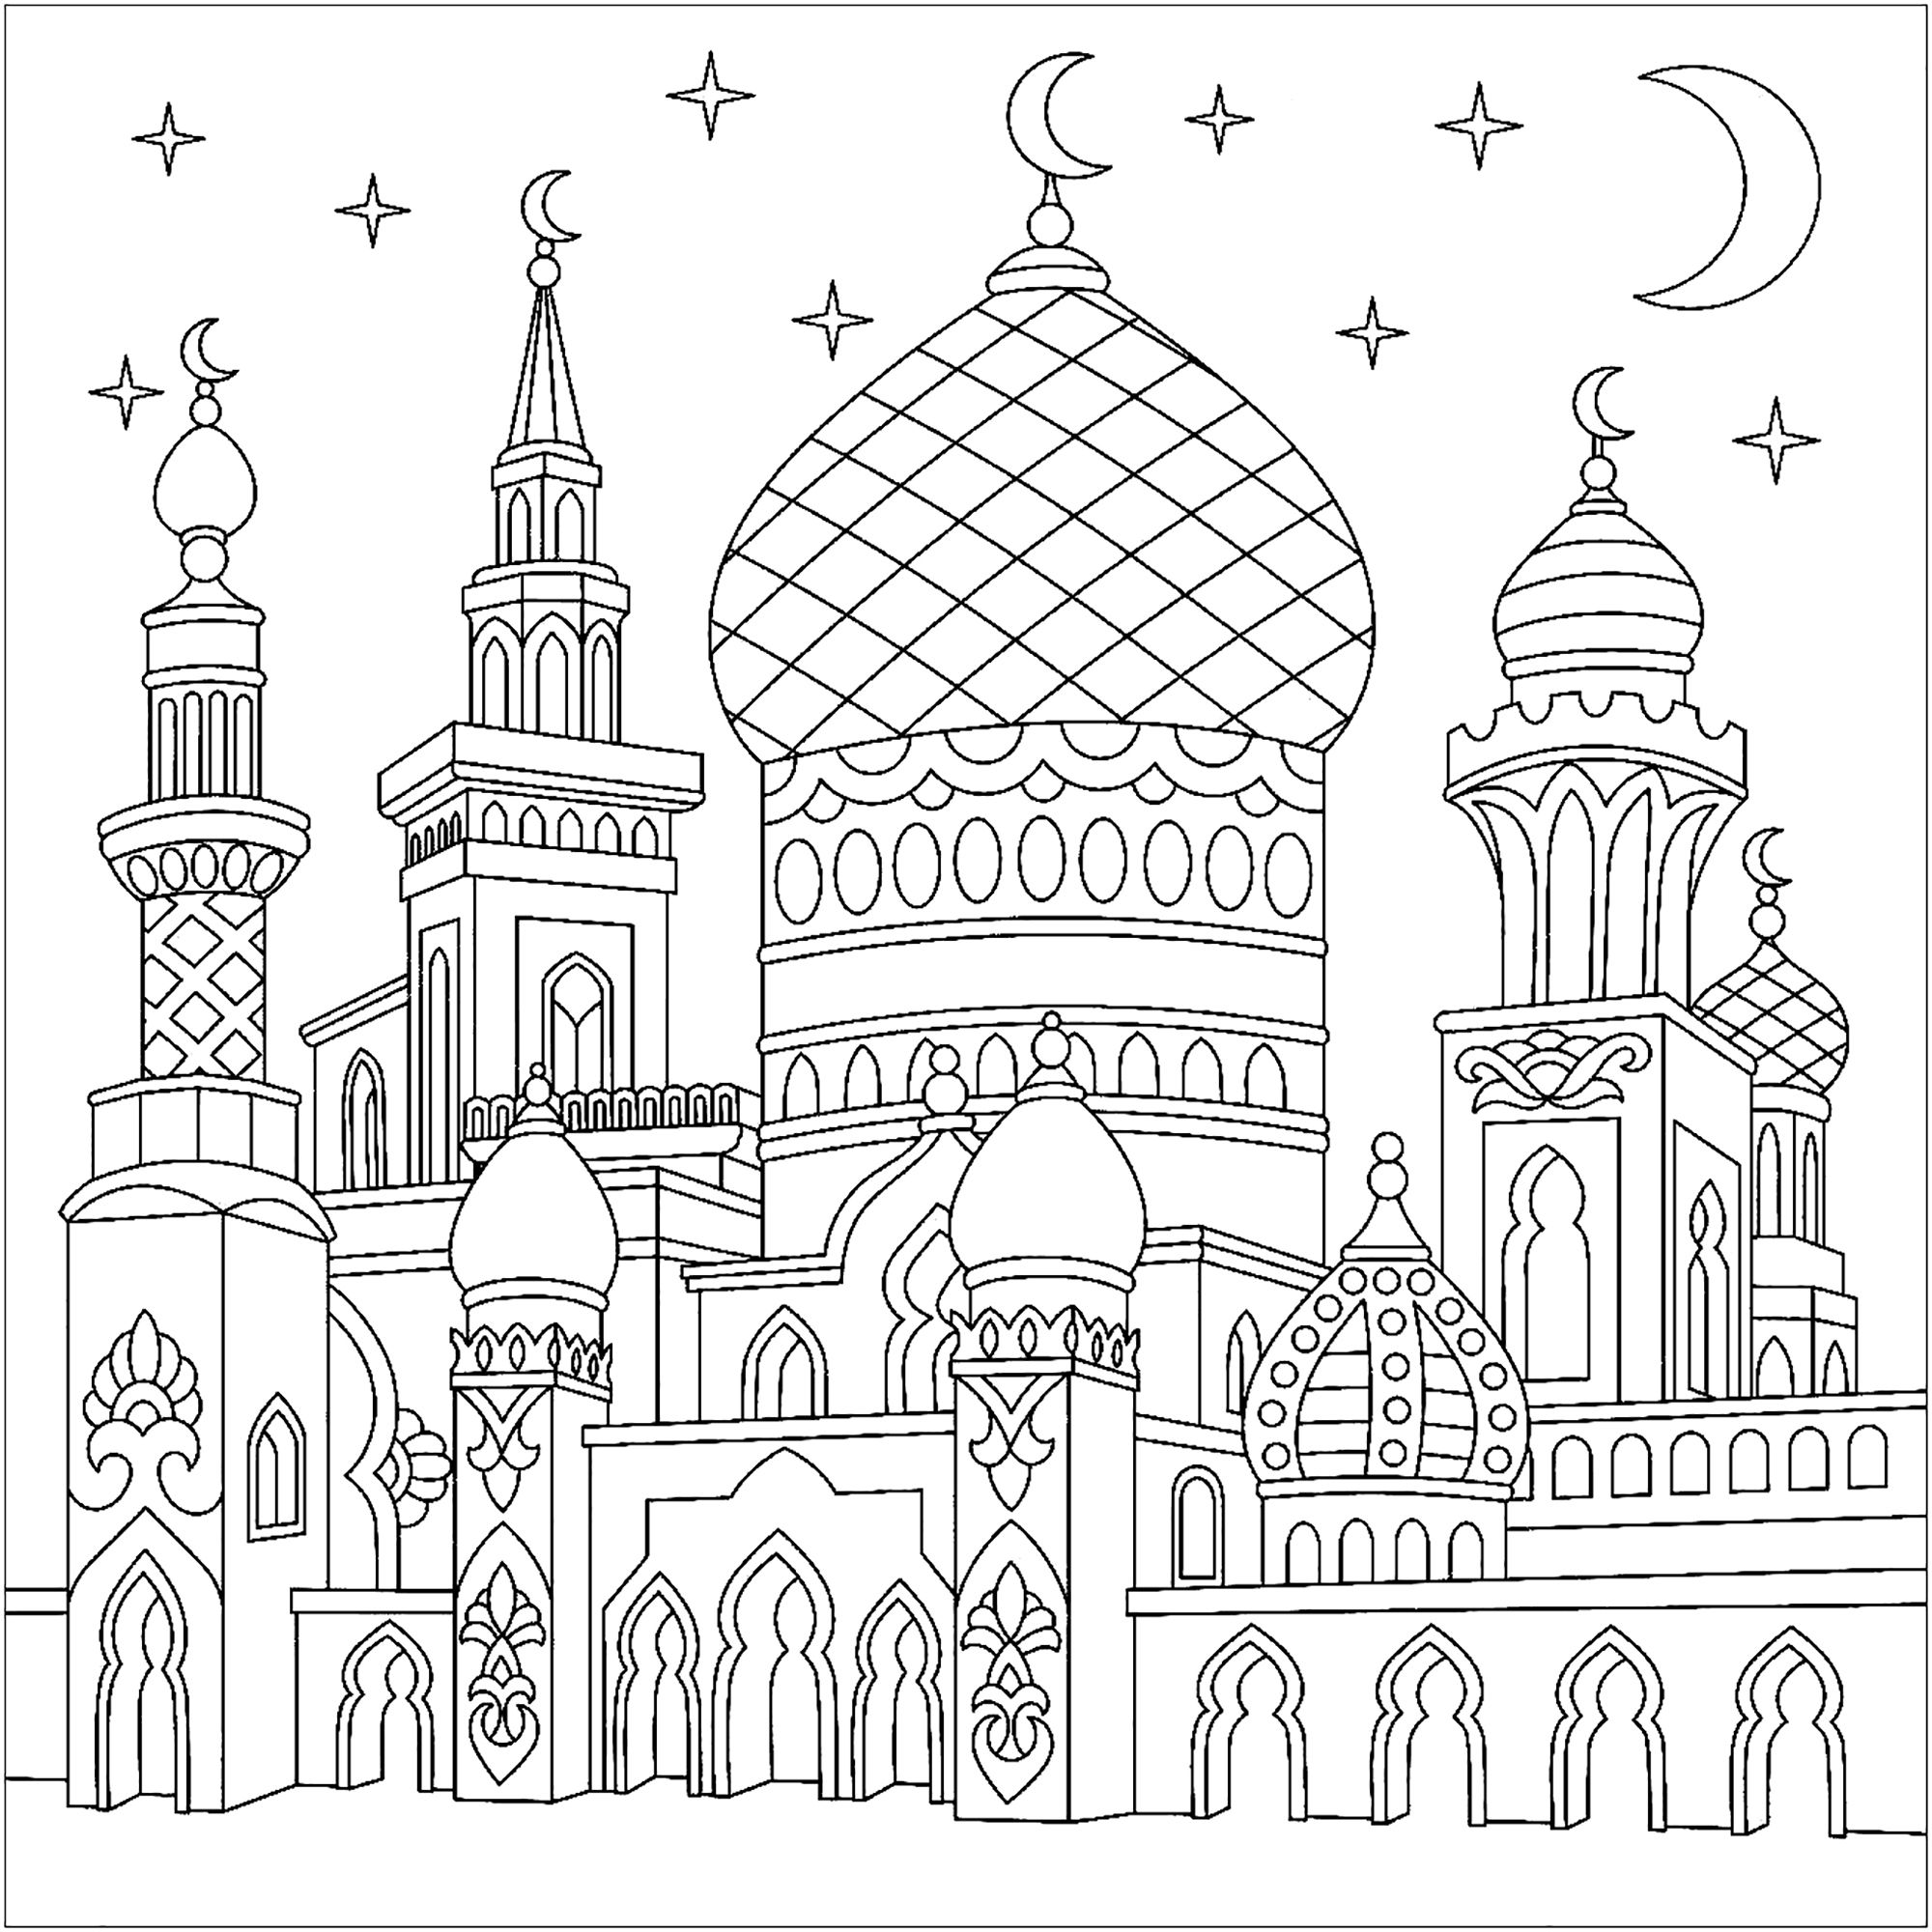 Pin By Ana Rodrigues On Coloring Pages Islamic Art Coloring Books Coloring Pages